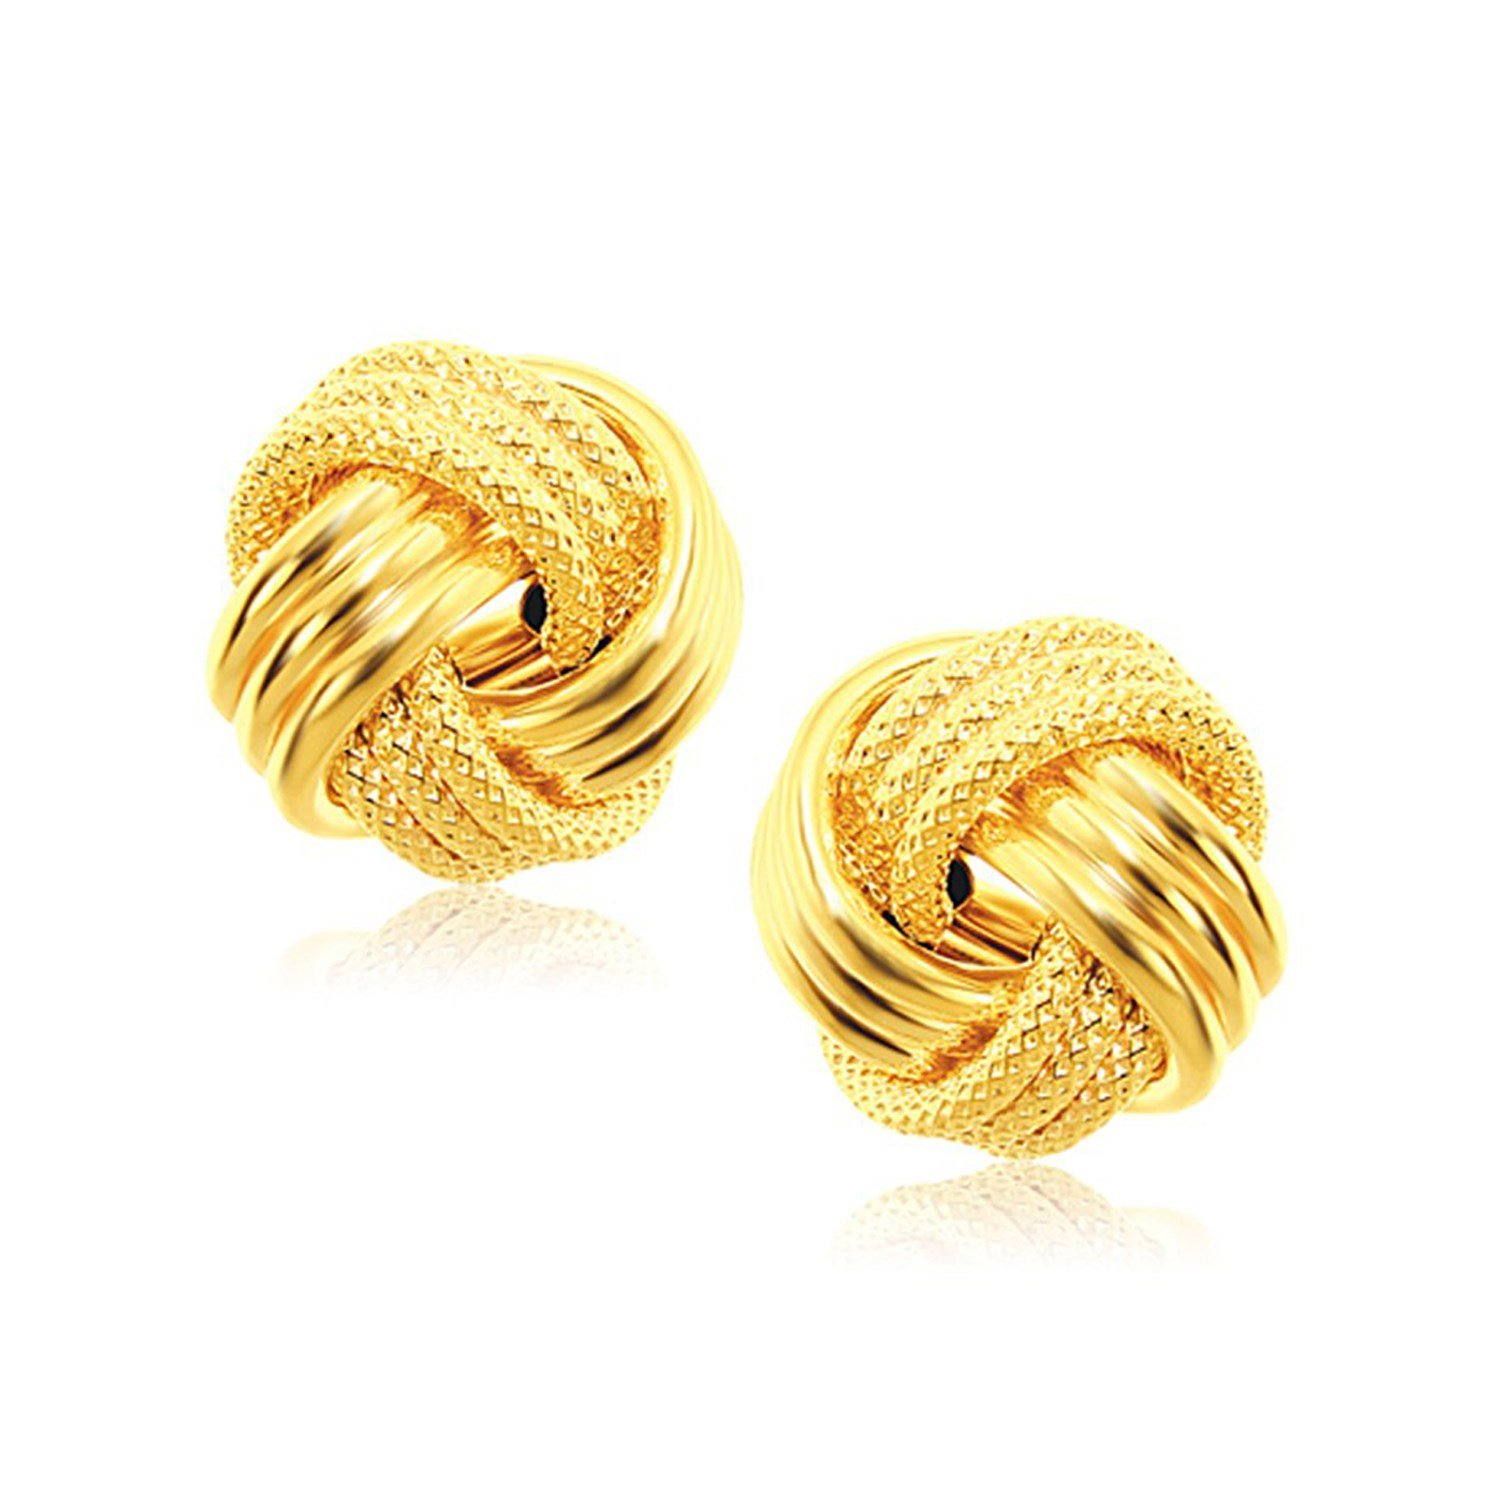 MCS Jewelry 14 Karat Rose, White OR Yellow Gold Love Knot Earrings (9 mm Diameter) (yellow-gold)